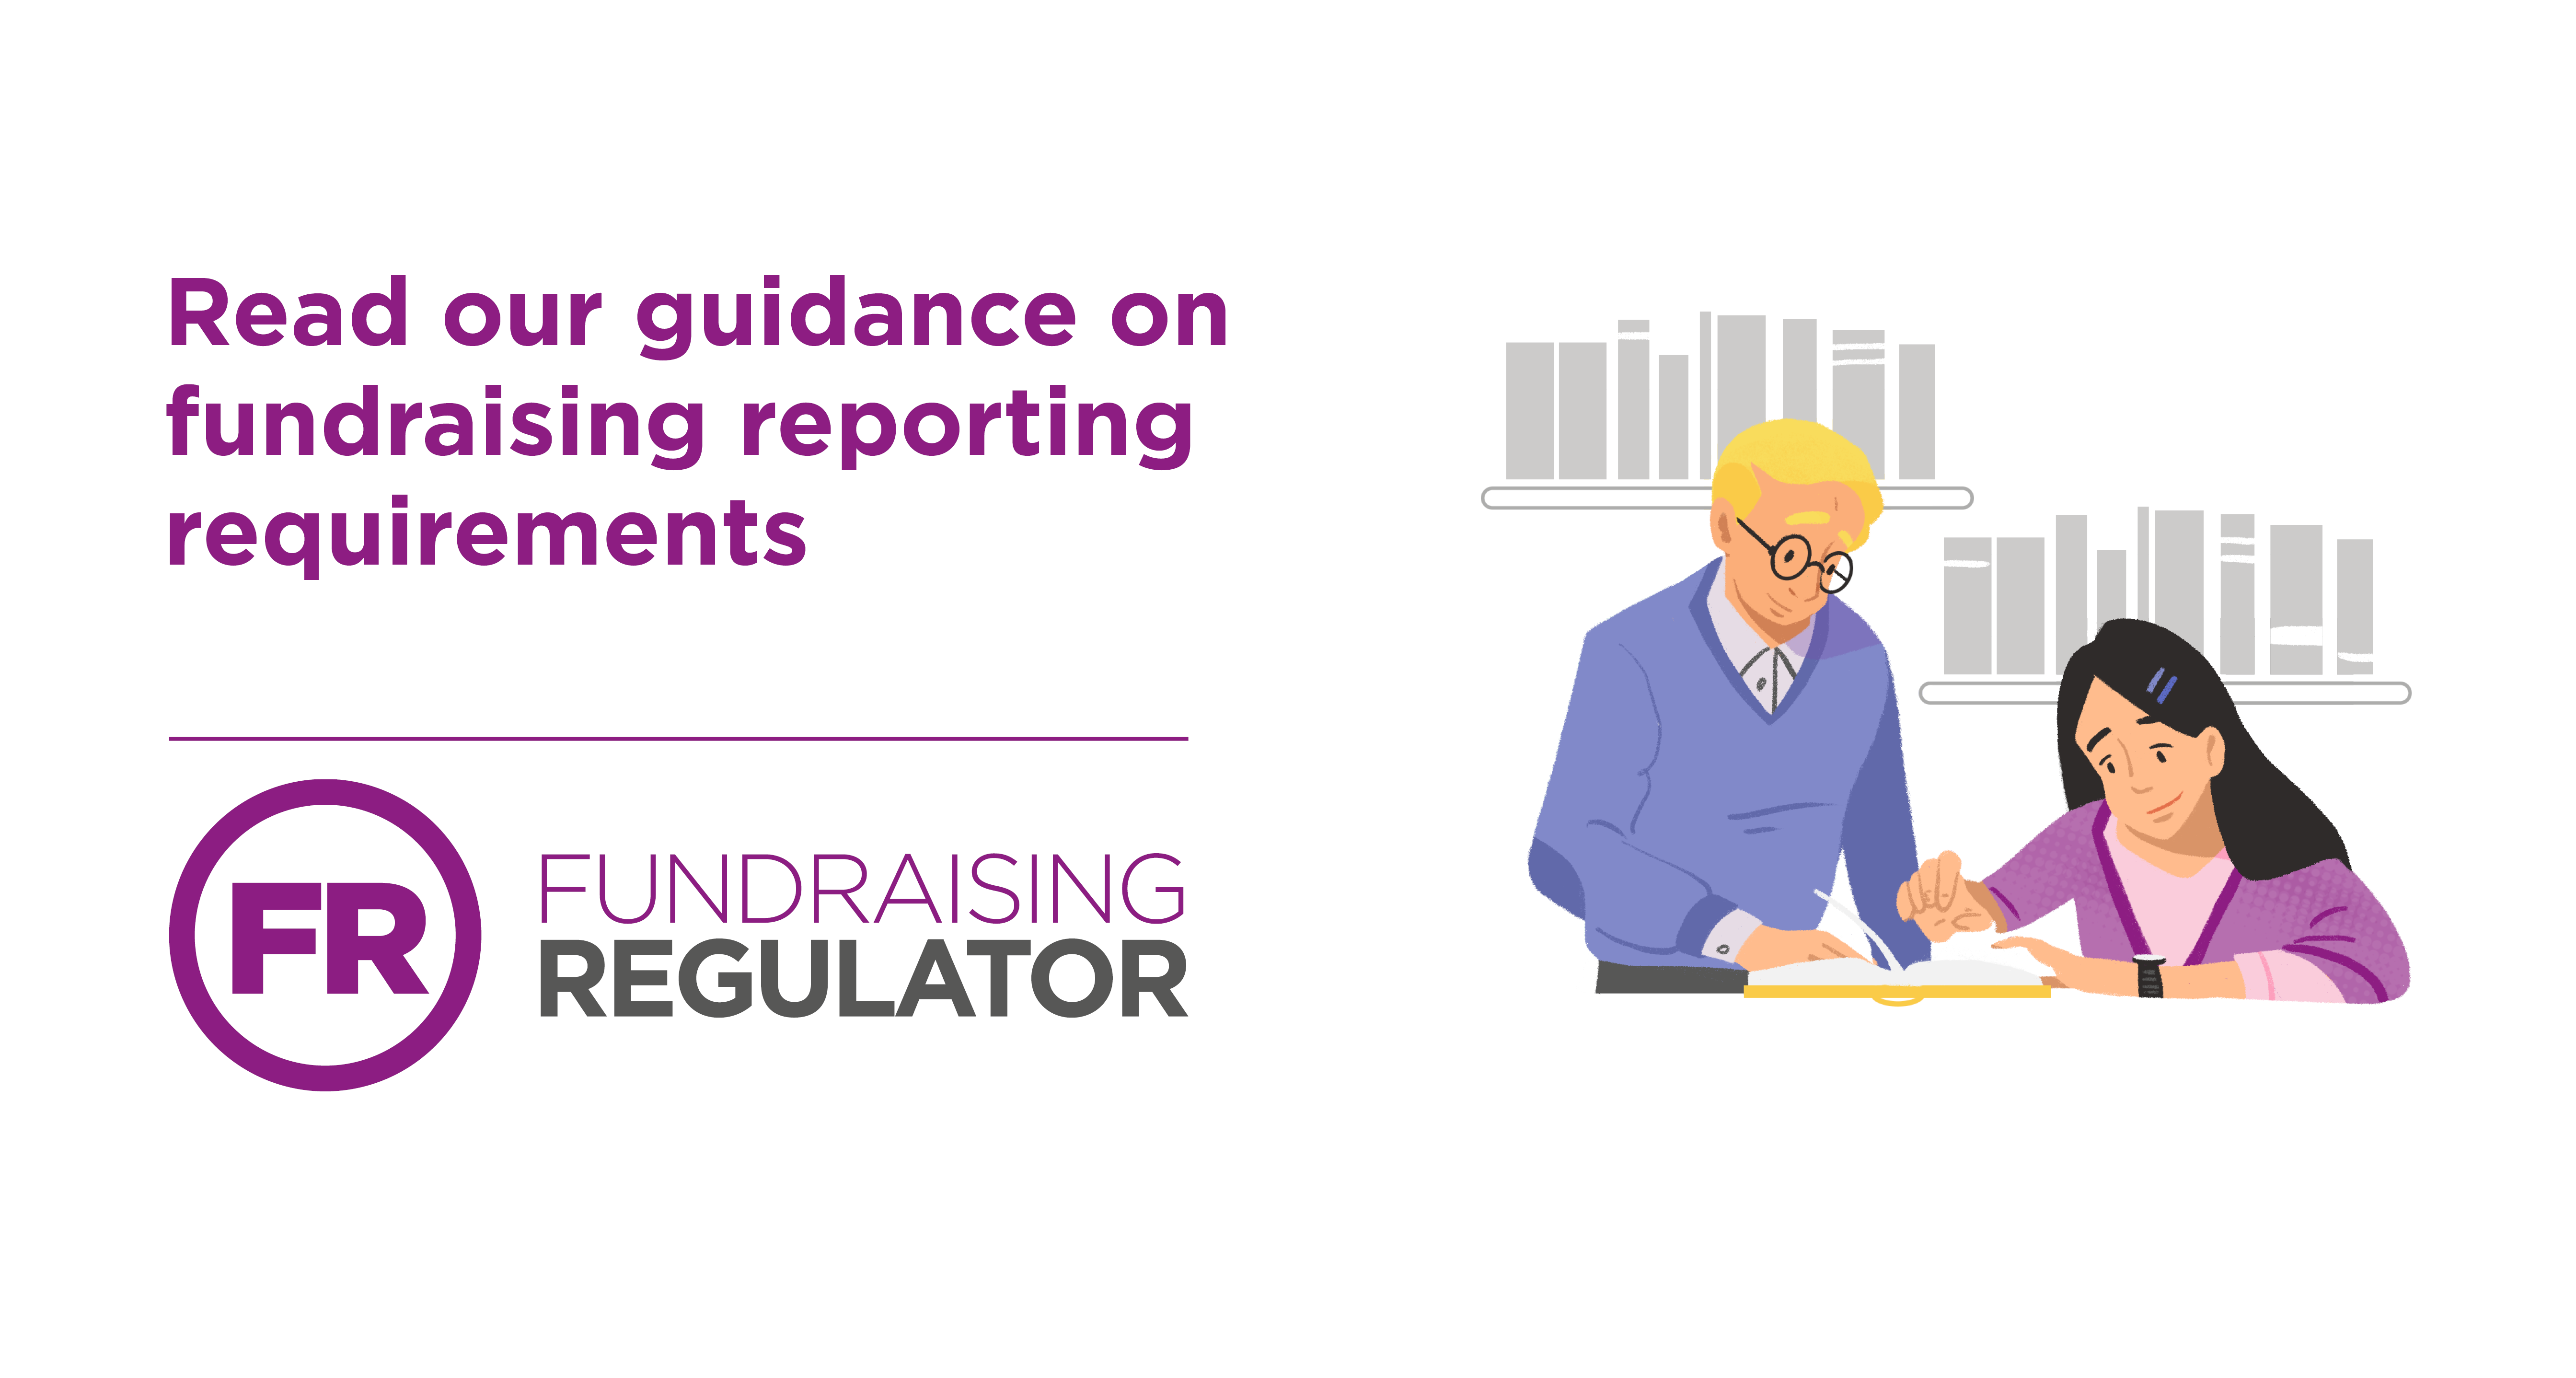 Read our guidance on fundraising reporting requirements